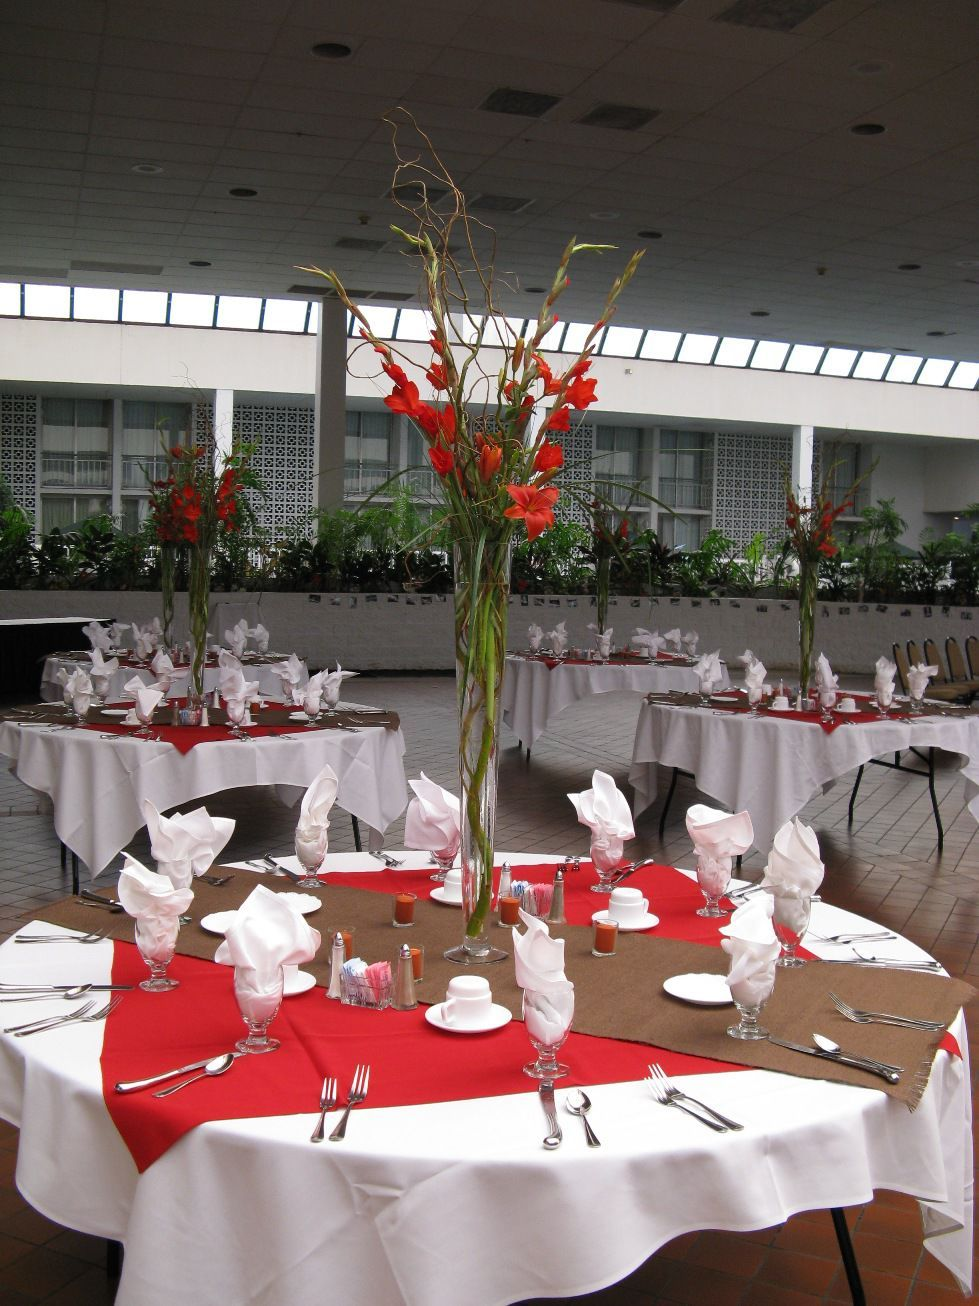 Wedding decorations red  Striking Red Gladiolus  Wedding decor  Pinterest  Gladioli